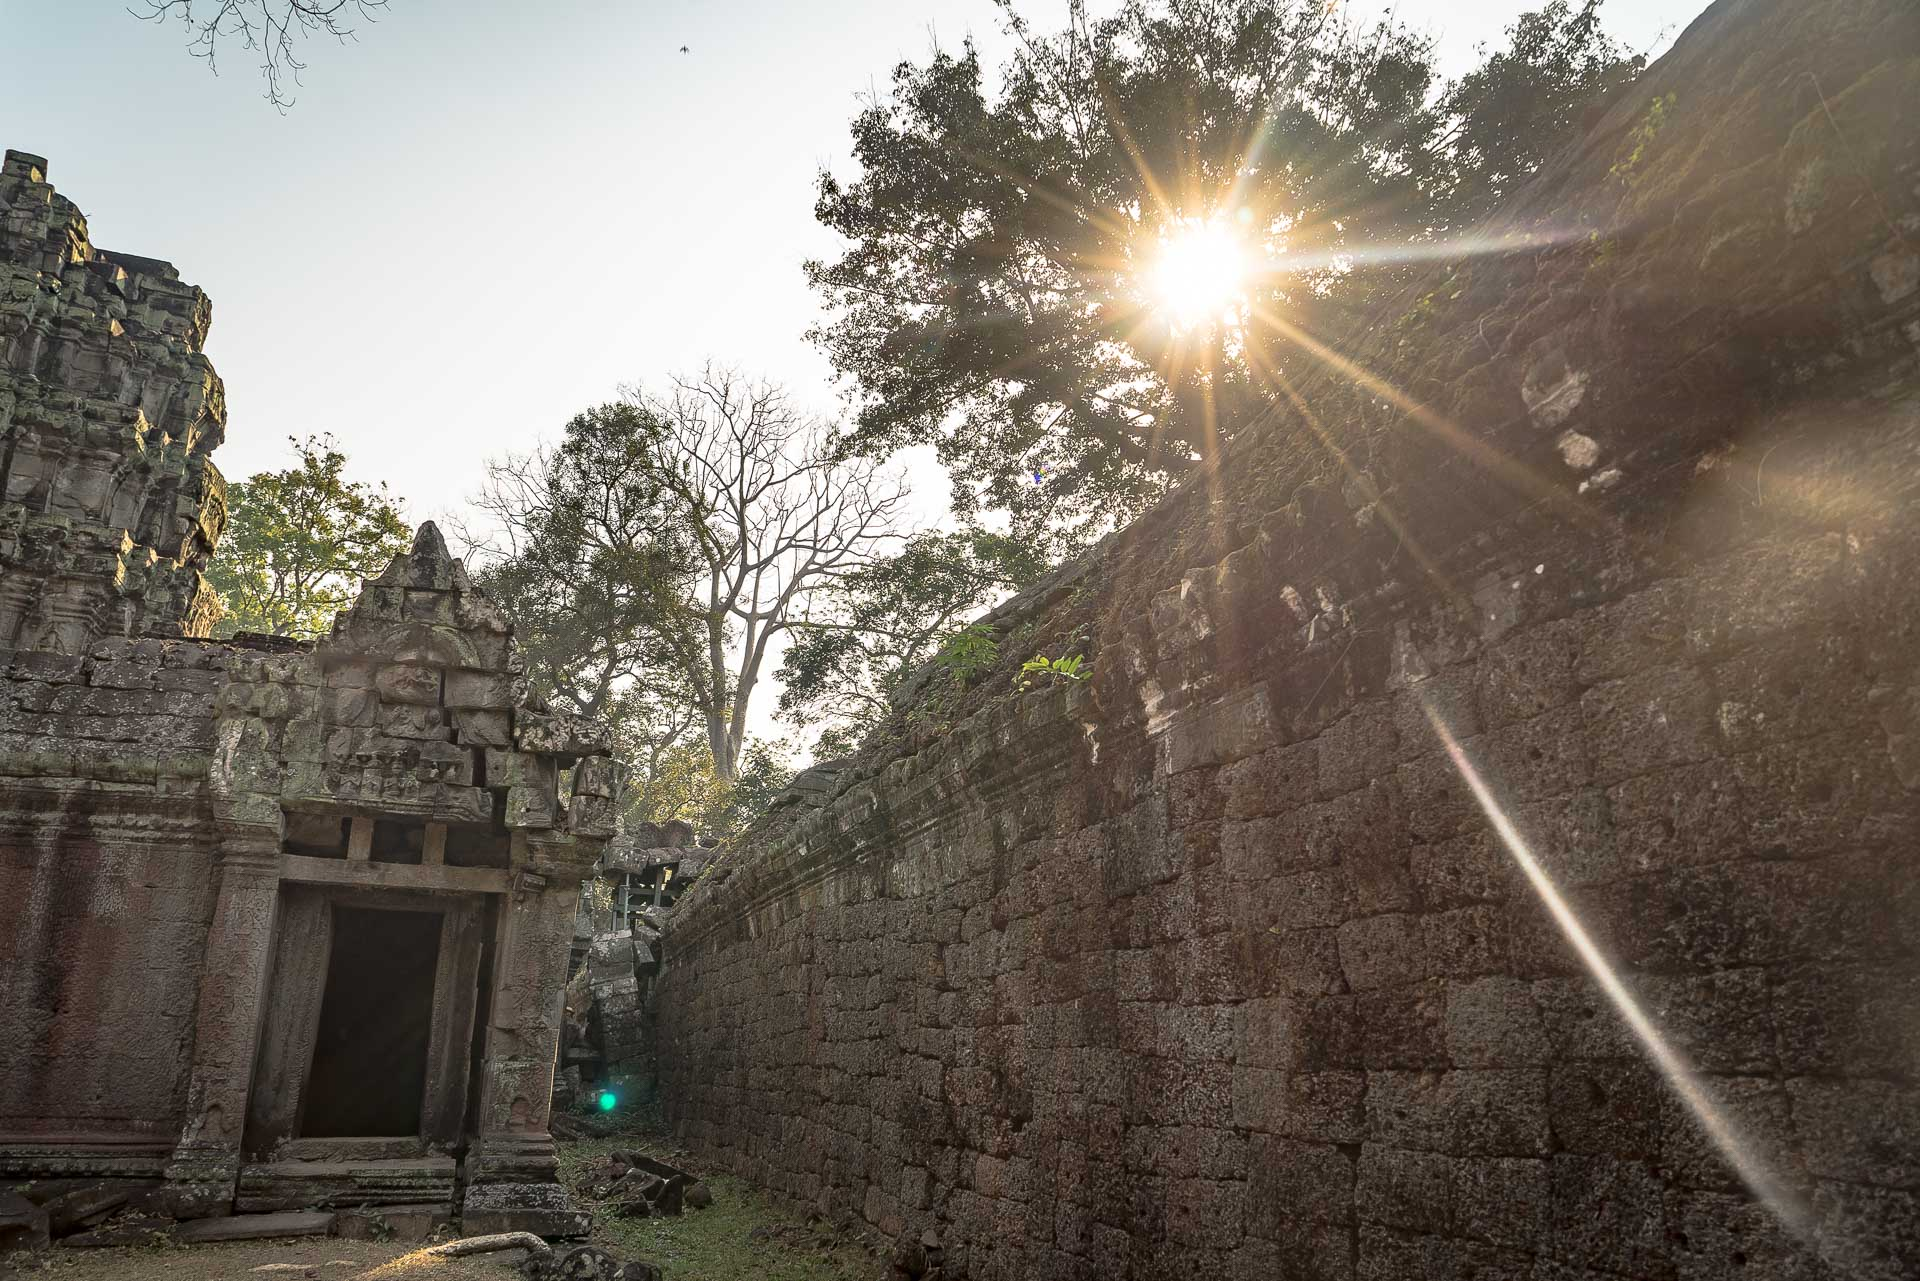 Lesvoyageuses-guide-voyage-Siem-reap-angkor-temples-Cambodge-35